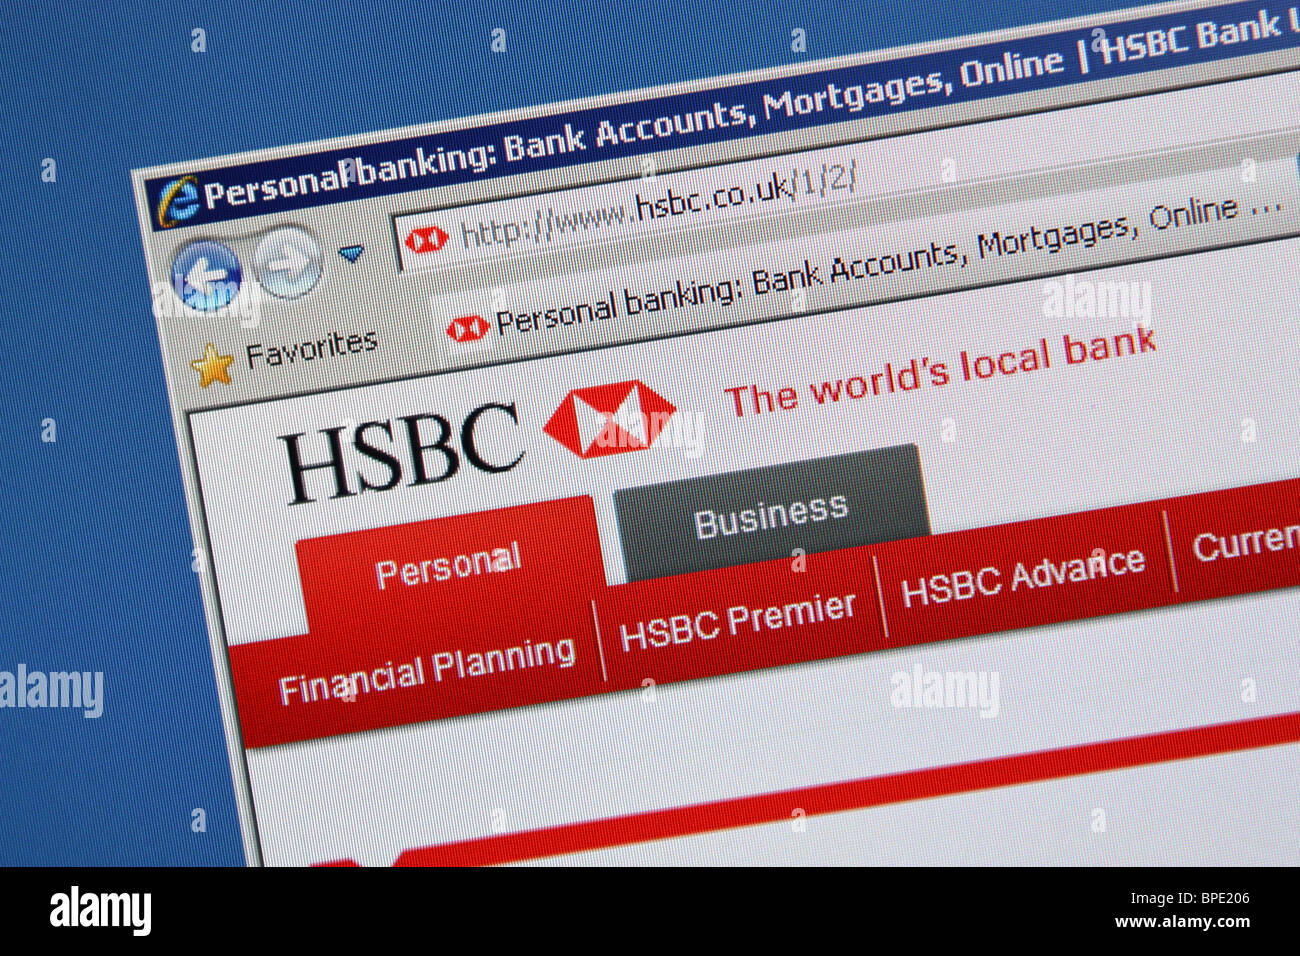 Hsbc Online Stock Photos & Hsbc Online Stock Images - Page 2